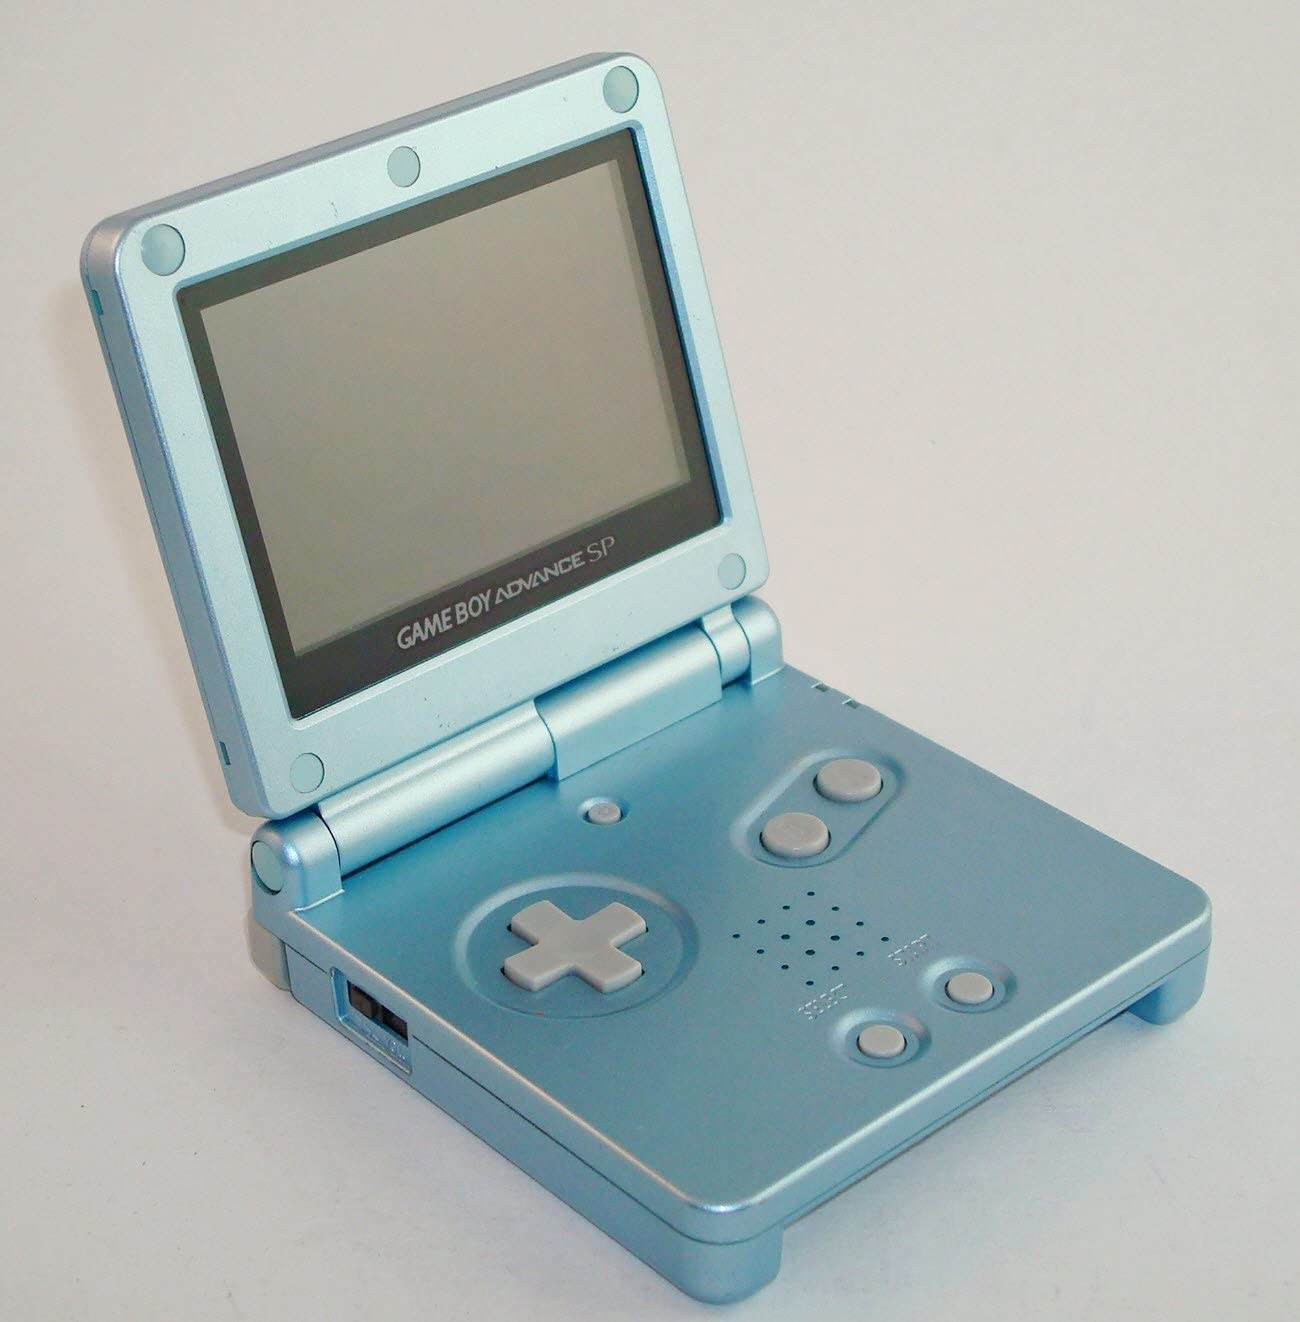 Amazon.com: Game Boy Advance SP Pearl Blue [Game Boy Advance ...